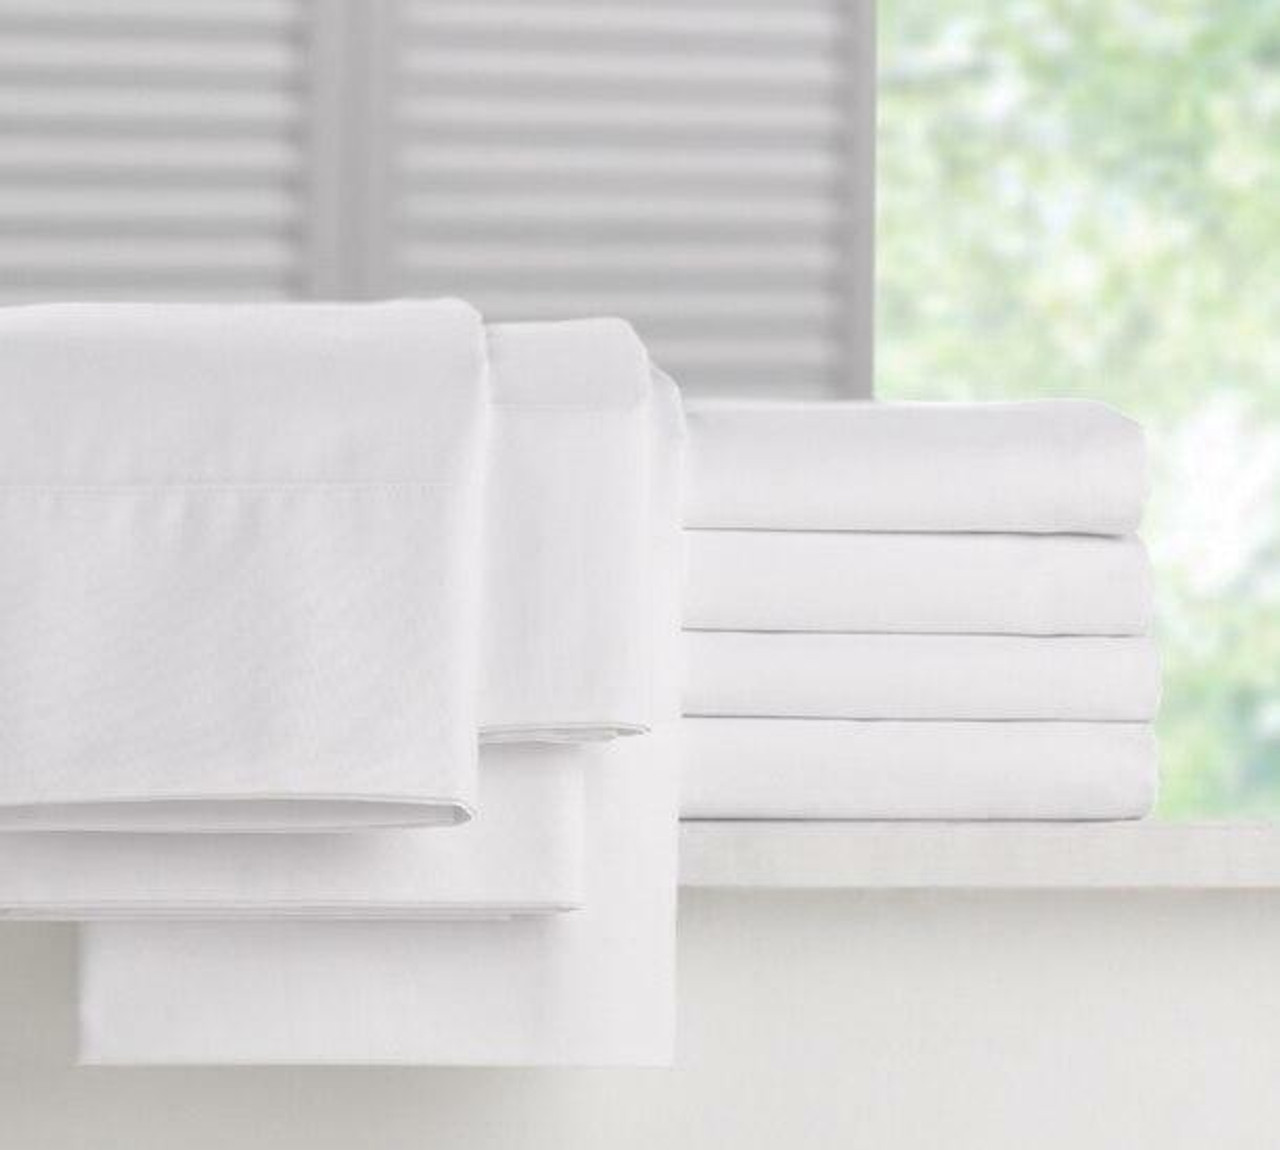 WestPoint/Martex Martex Millennium T300 Hotel Sheets - All Colors and Sizes